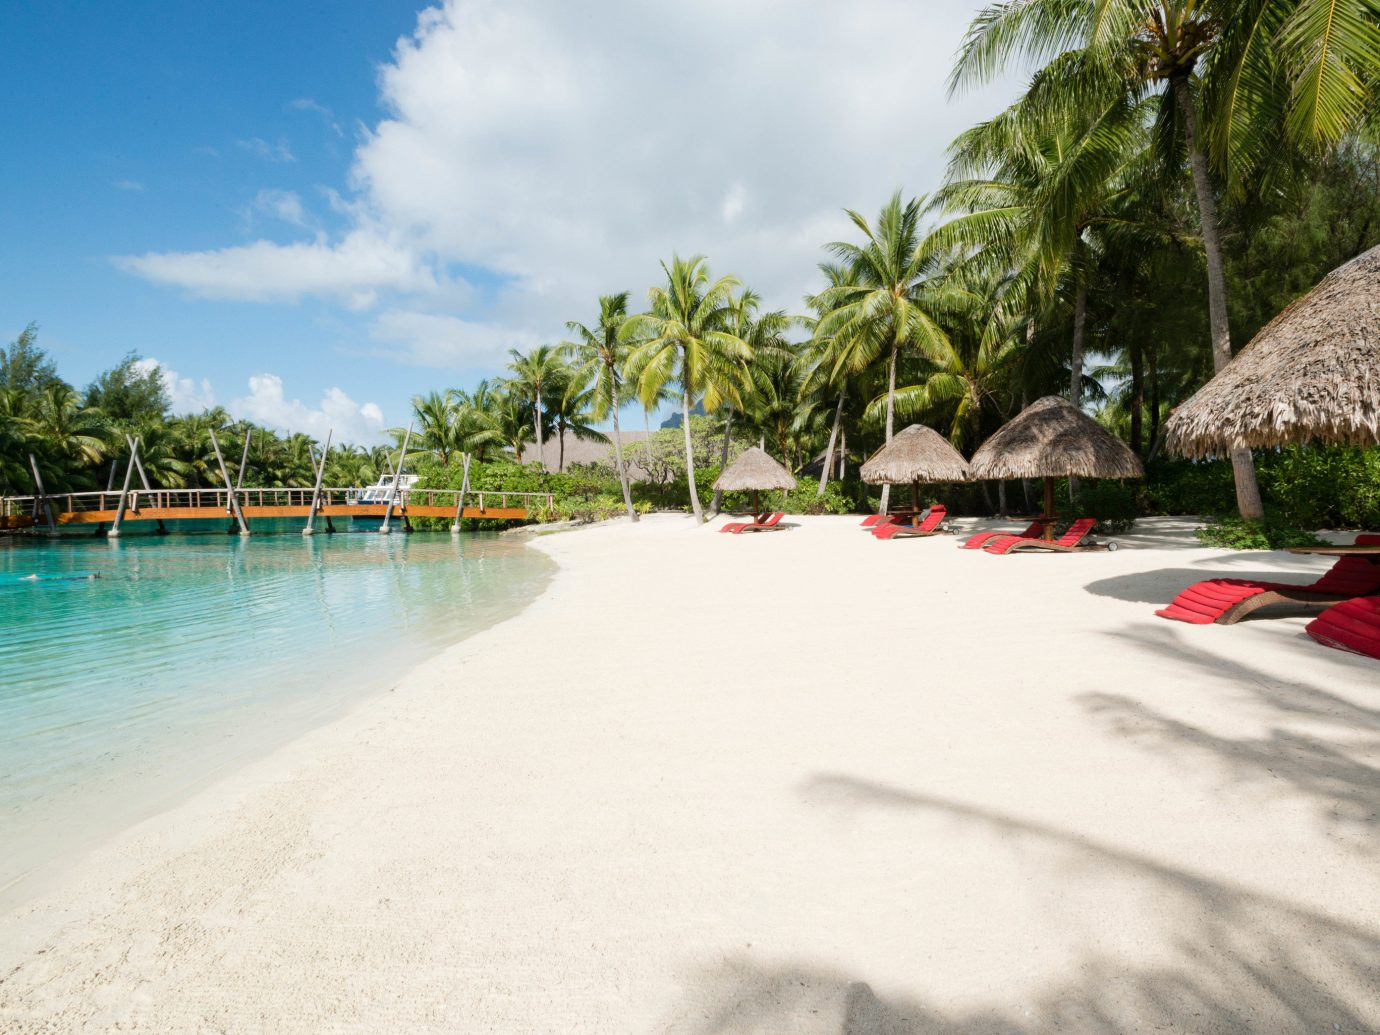 All-Inclusive Resorts Boutique Hotels Hotels Romance outdoor sky tree water Beach body of water vacation Nature Sea shore Resort bay tropics day